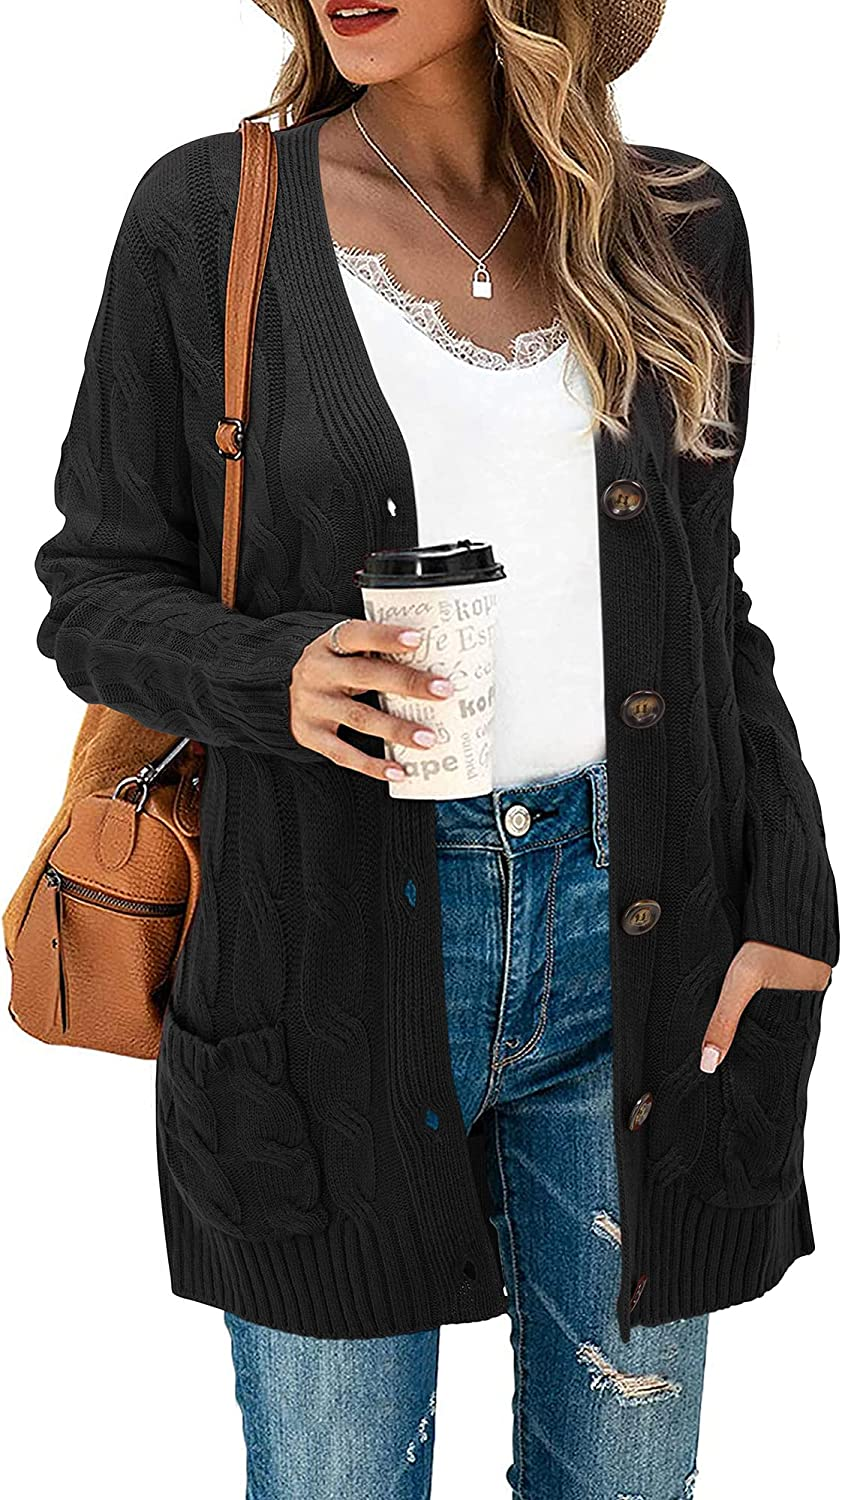 STYLEWORD Women's Long Sleeve Open Front Cardigan Button Down Cable Knit Sweater Loose Coat with Pockets